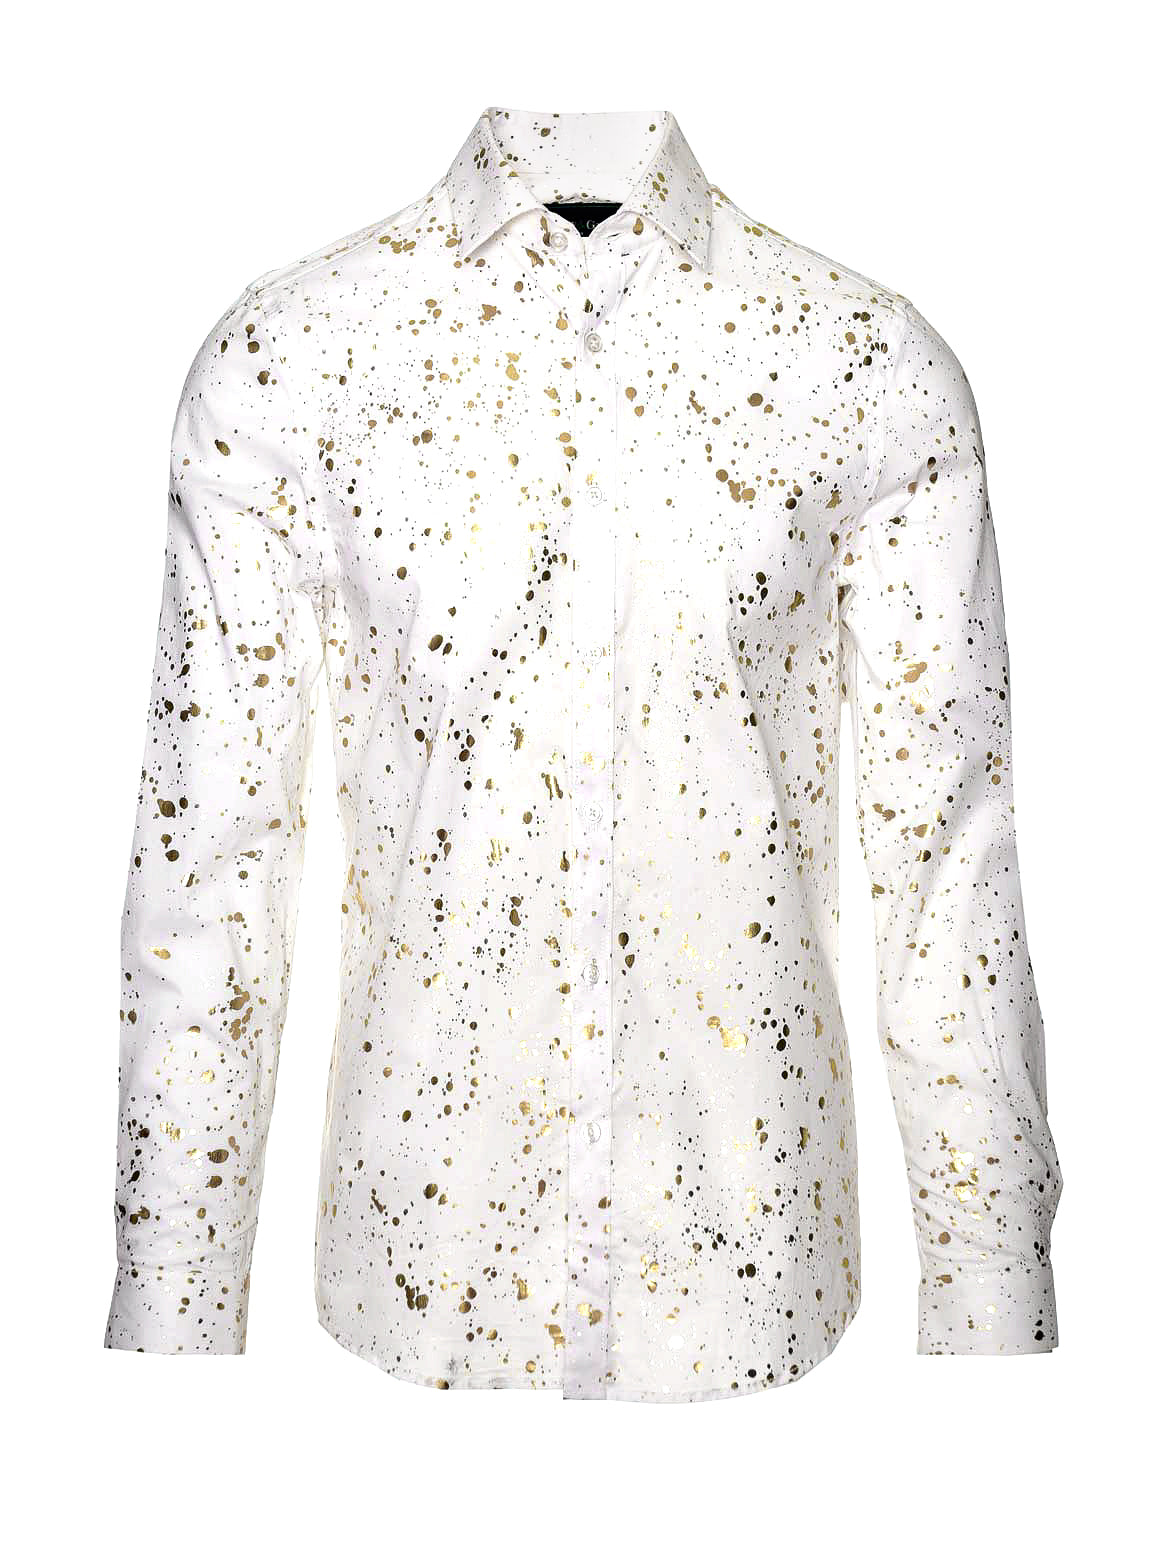 Long Sleeve Shirt - White & Gold Splatter